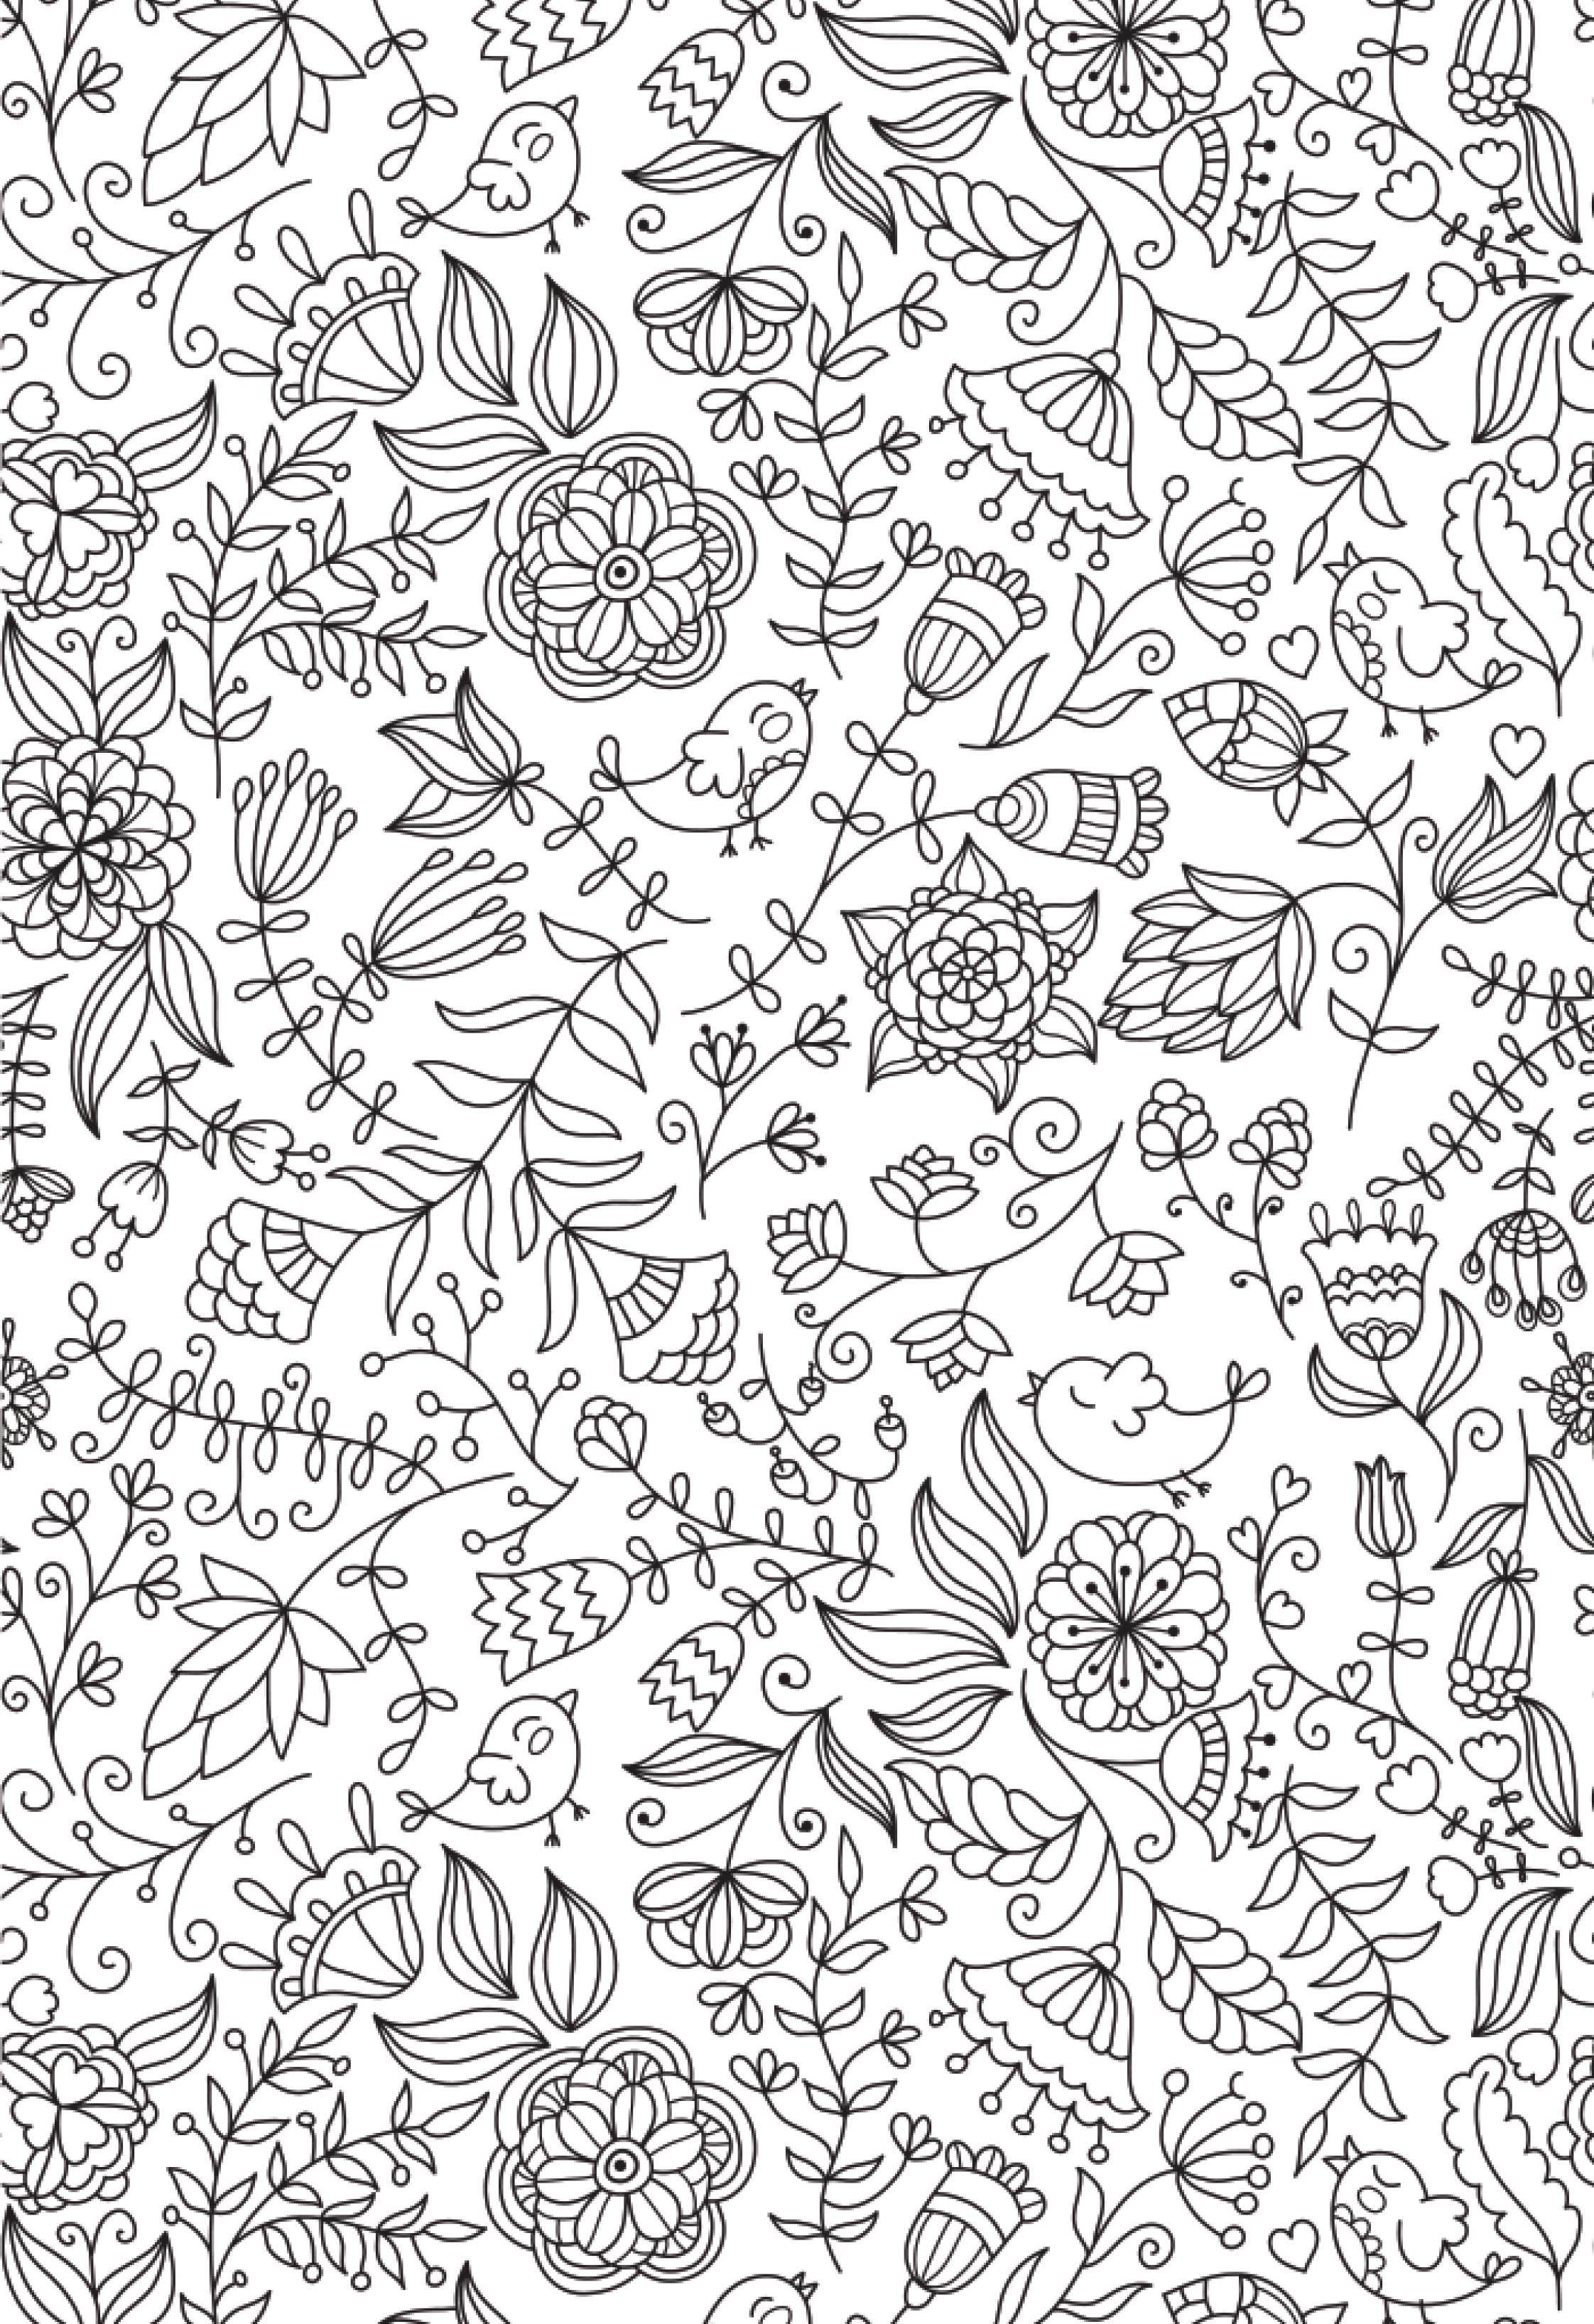 Zen colouring advanced art therapy collector edition - By Zen Colouring Pad Botanical